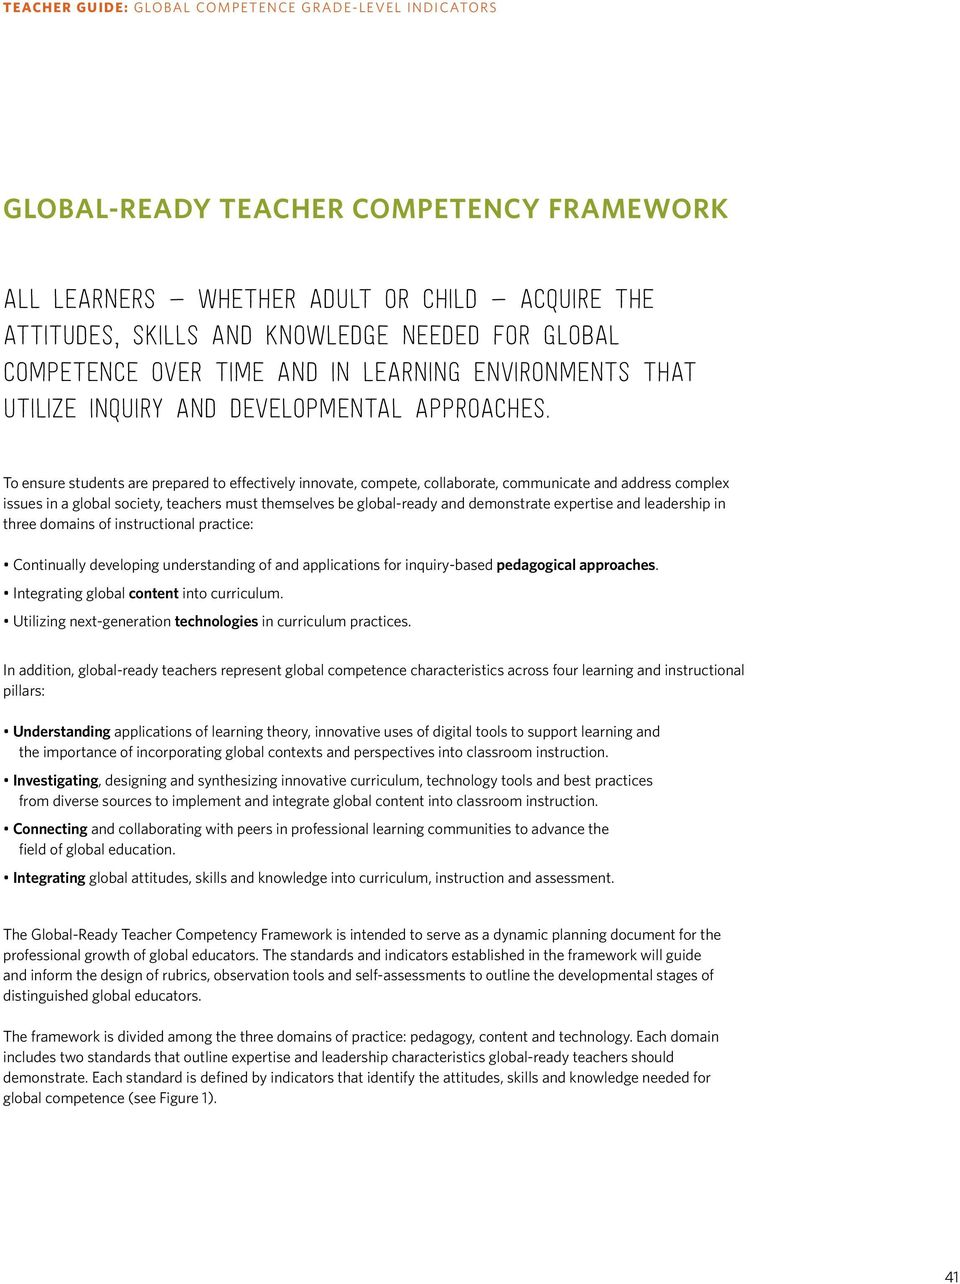 To ensure students are prepared to effectively innovate, compete, collaborate, communicate and address complex issues in a global society, teachers must themselves be global-ready and demonstrate